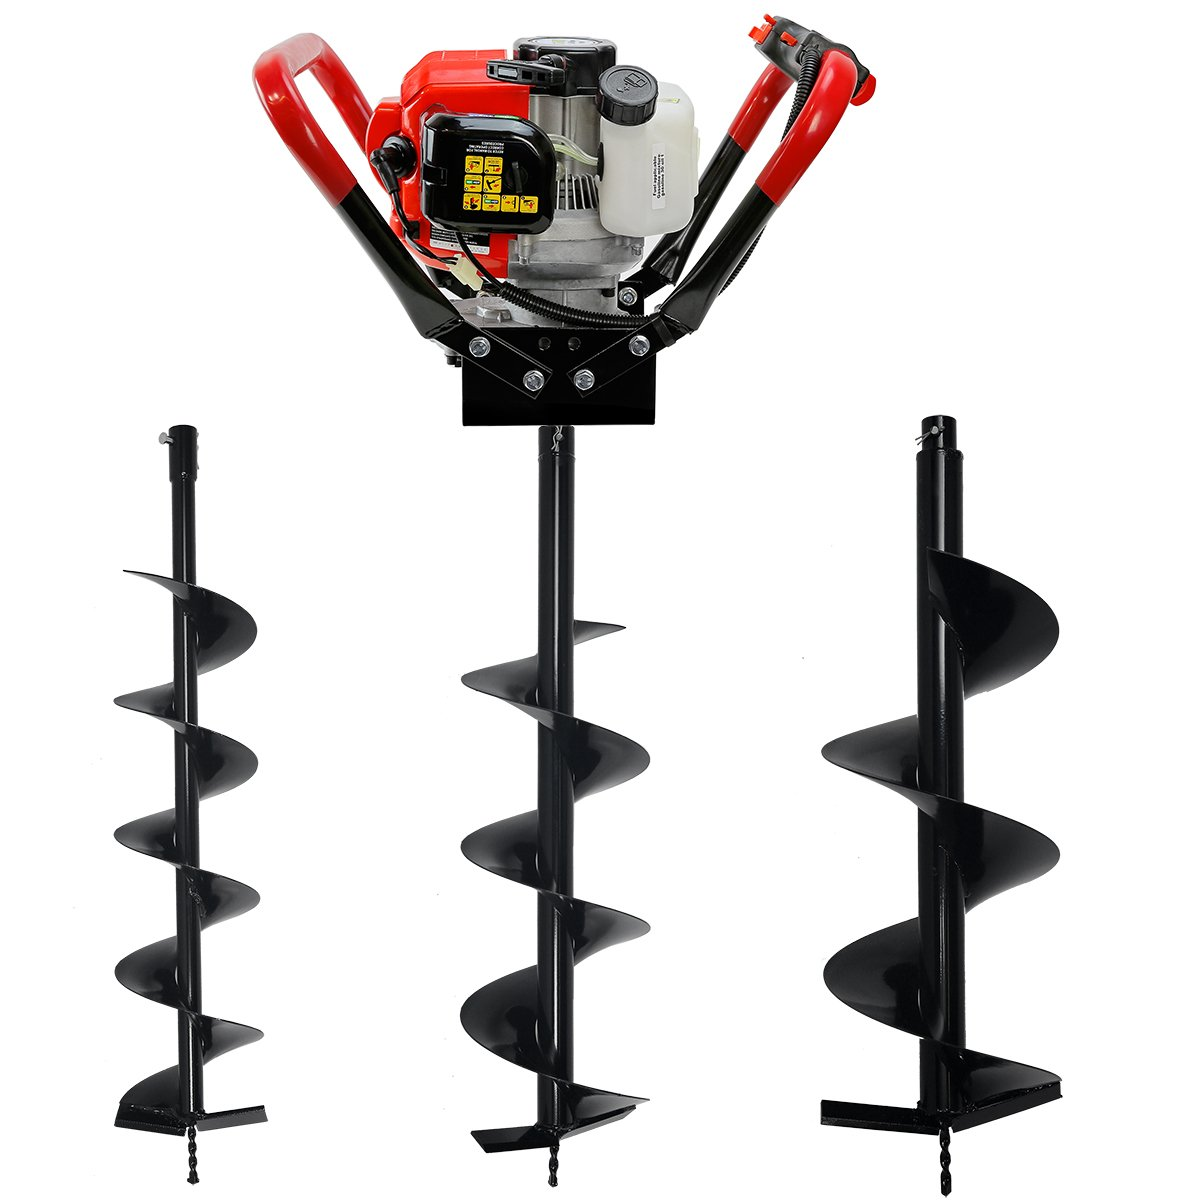 V-Type 55CC 2 Stroke Gas Posthole Digger One Man Auger (Digger + 6' 8' 10'Bits) XtremepowerUS